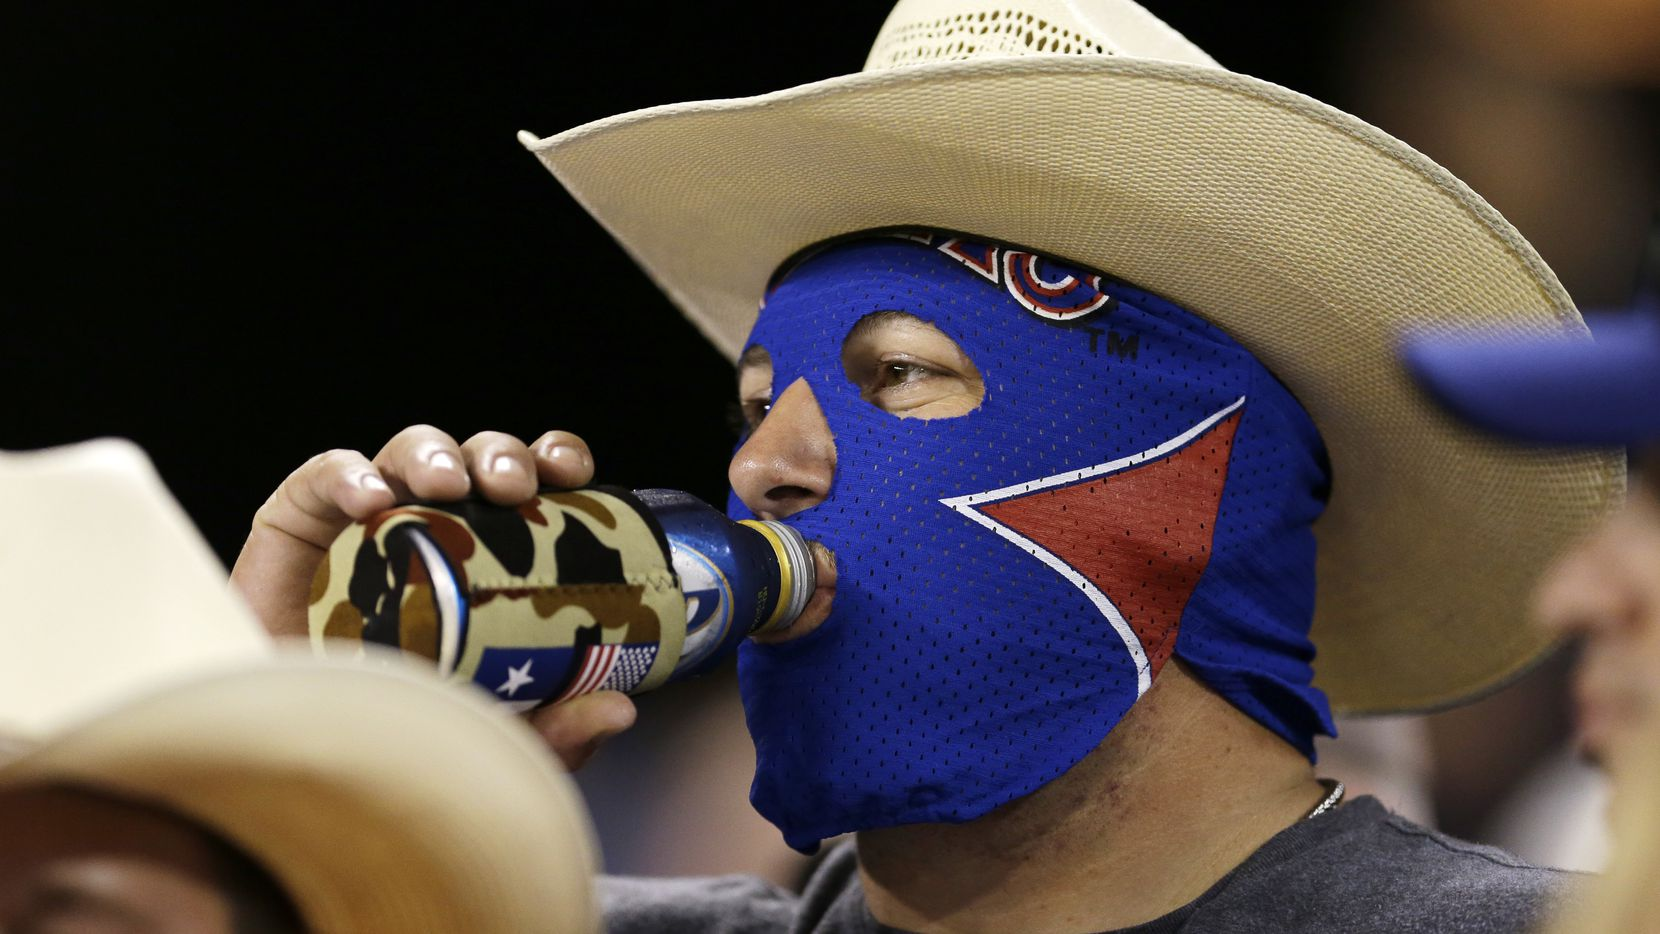 A Texas Rangers fan wearing a cowboy hat and a wrestling mask drinks beer during a baseball game against the Seattle Mariners, Monday, Aug. 26, 2013, in Seattle. (AP Photo/Ted S. Warren)